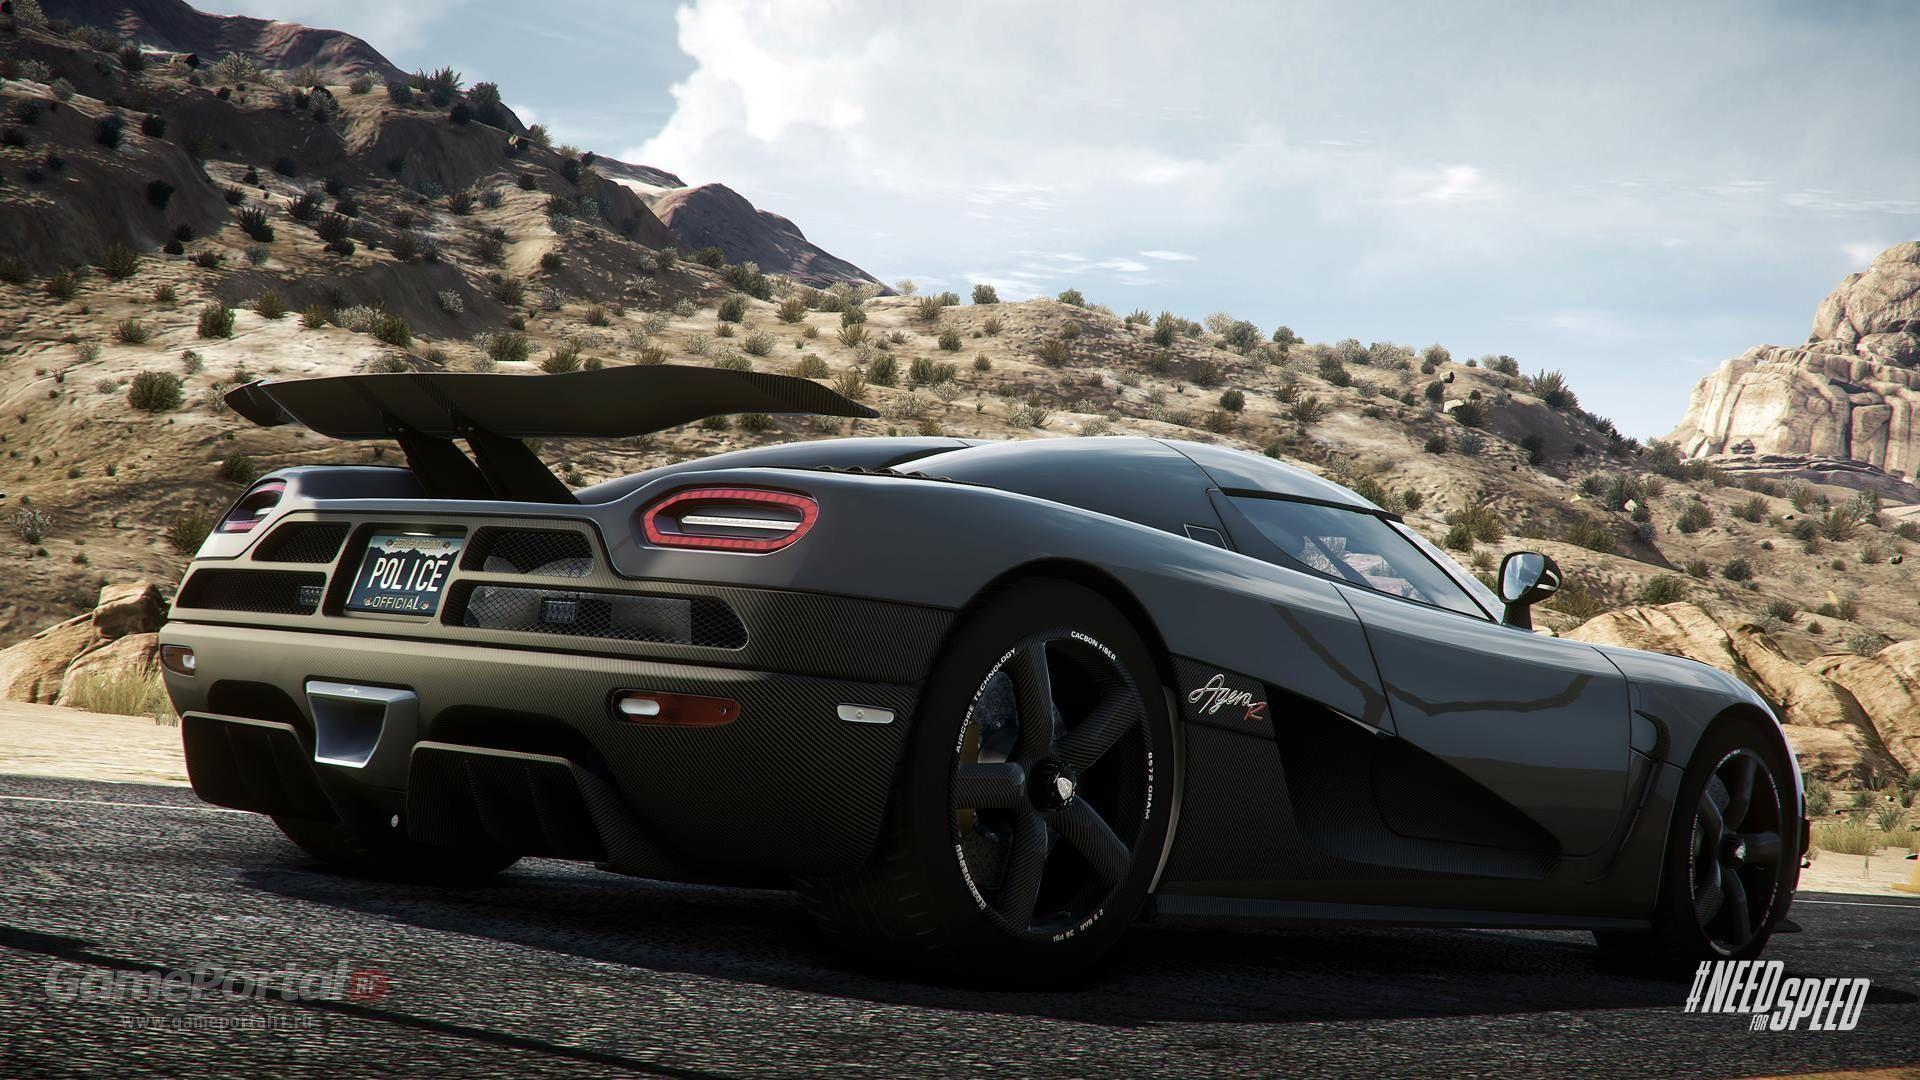 Wallpapers For > Need For Speed 2014 Cars Wallpaper